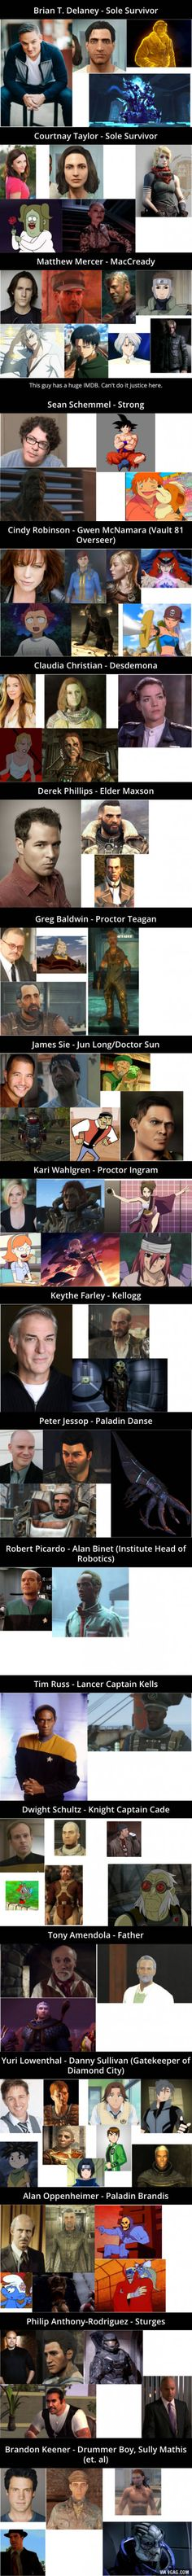 The Voice Actors of Fallout 4